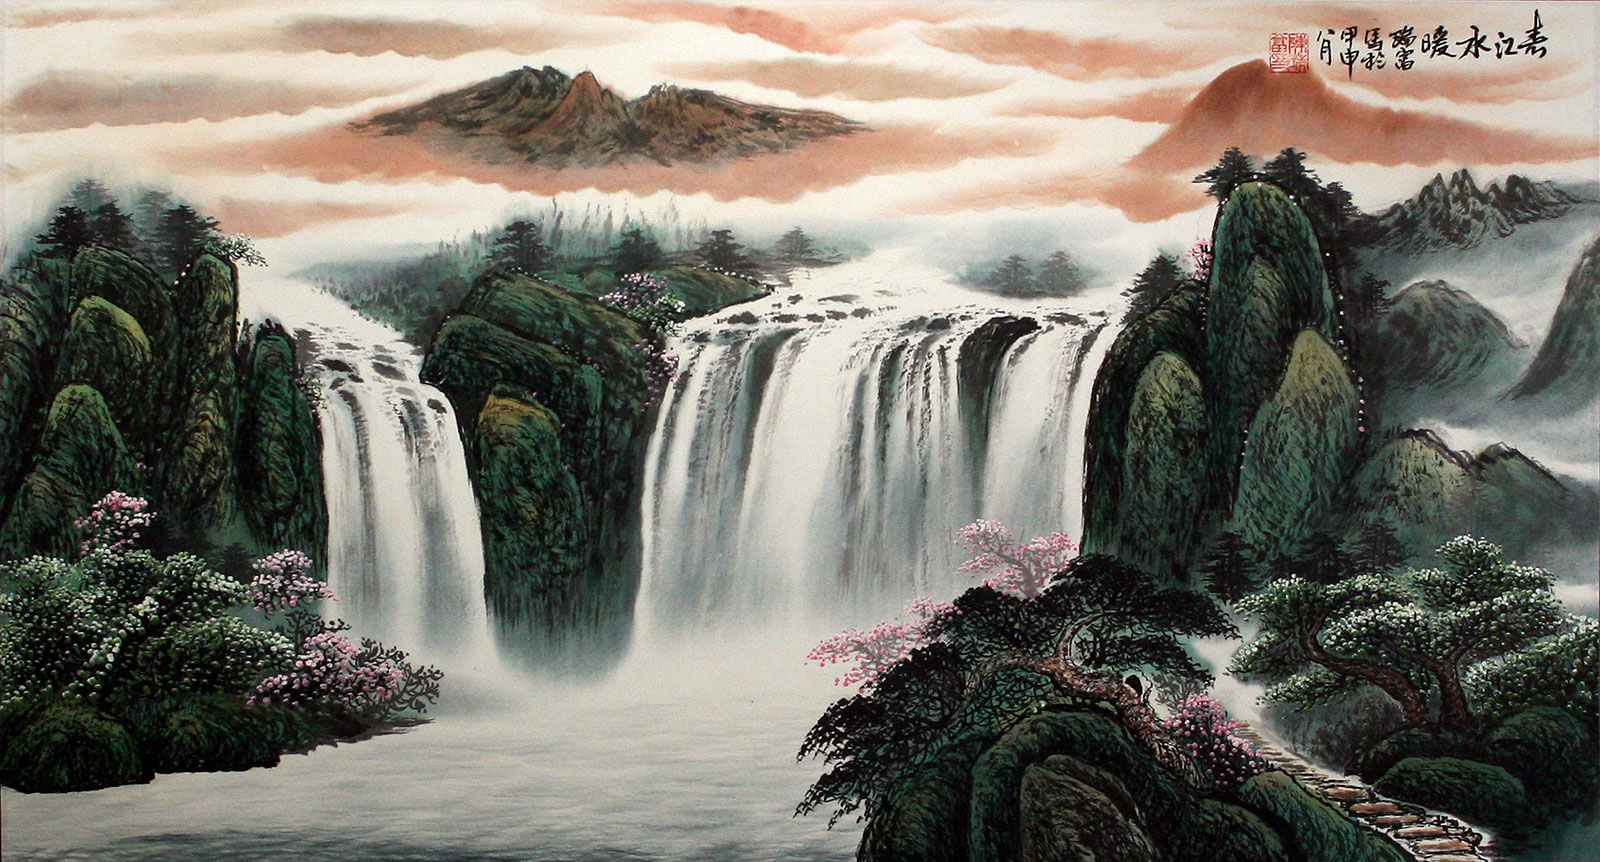 Chinese waterfall landscape painting landscapes of asia for Chinese mural art